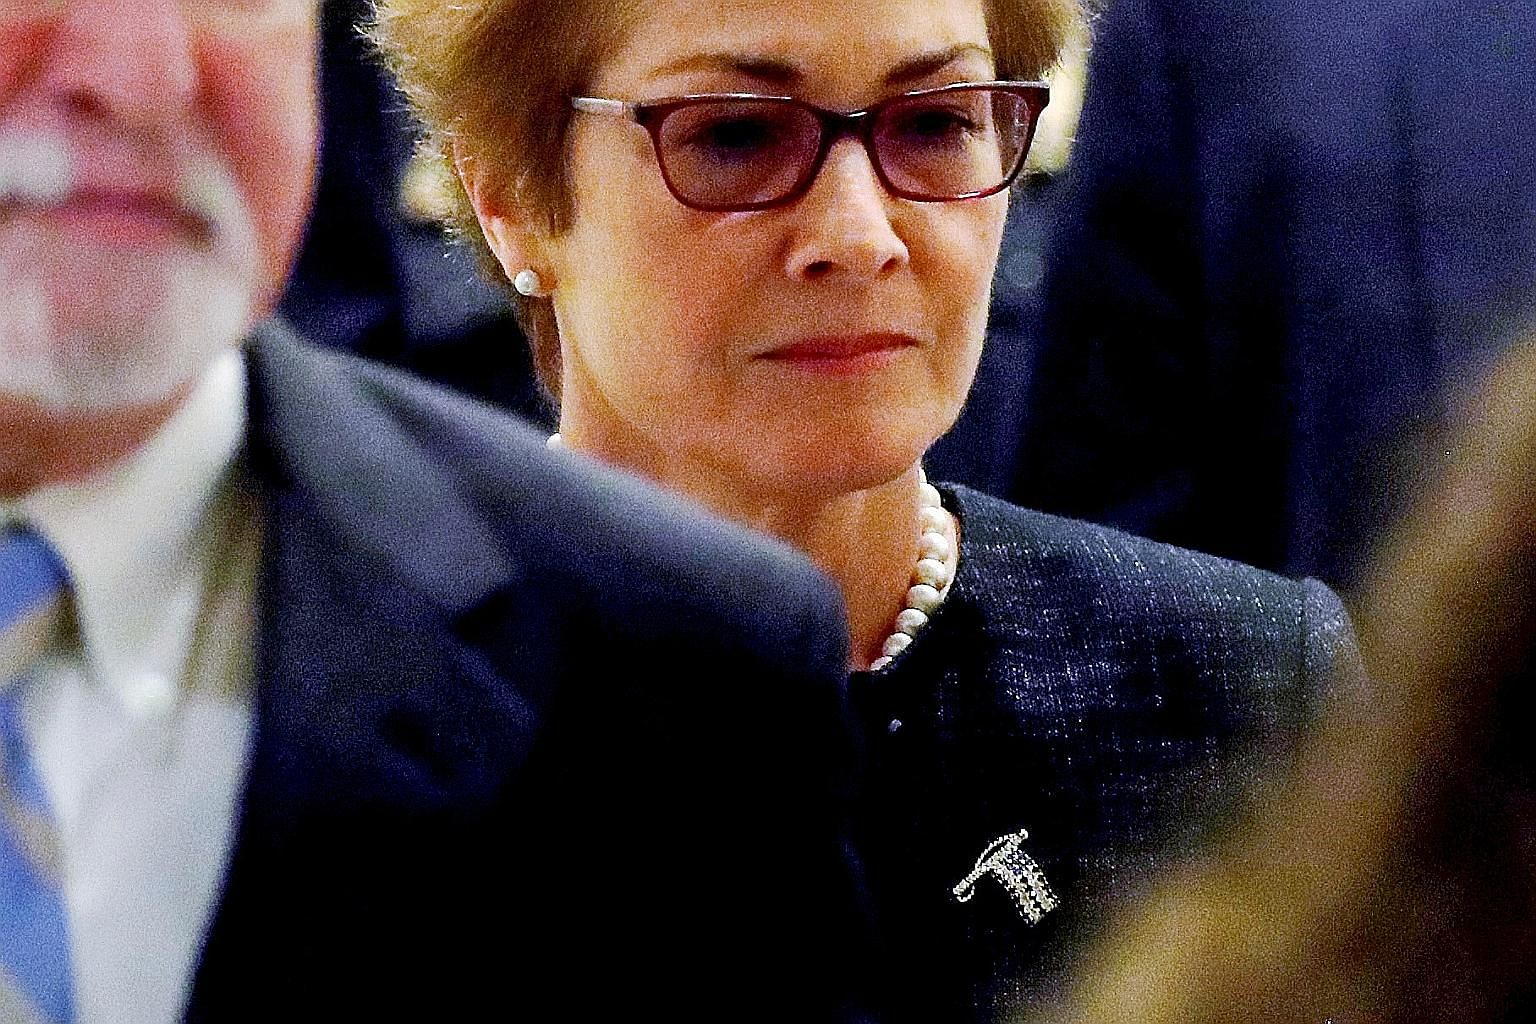 Ms Marie Yovanovitch was abruptly recalled as the US envoy to Ukraine in May. US President Donald Trump's personal lawyer Rudy Giuliani has accused her of blocking efforts to persuade Ukraine to investigate Mr Trump's domestic political rival Joe Biden an